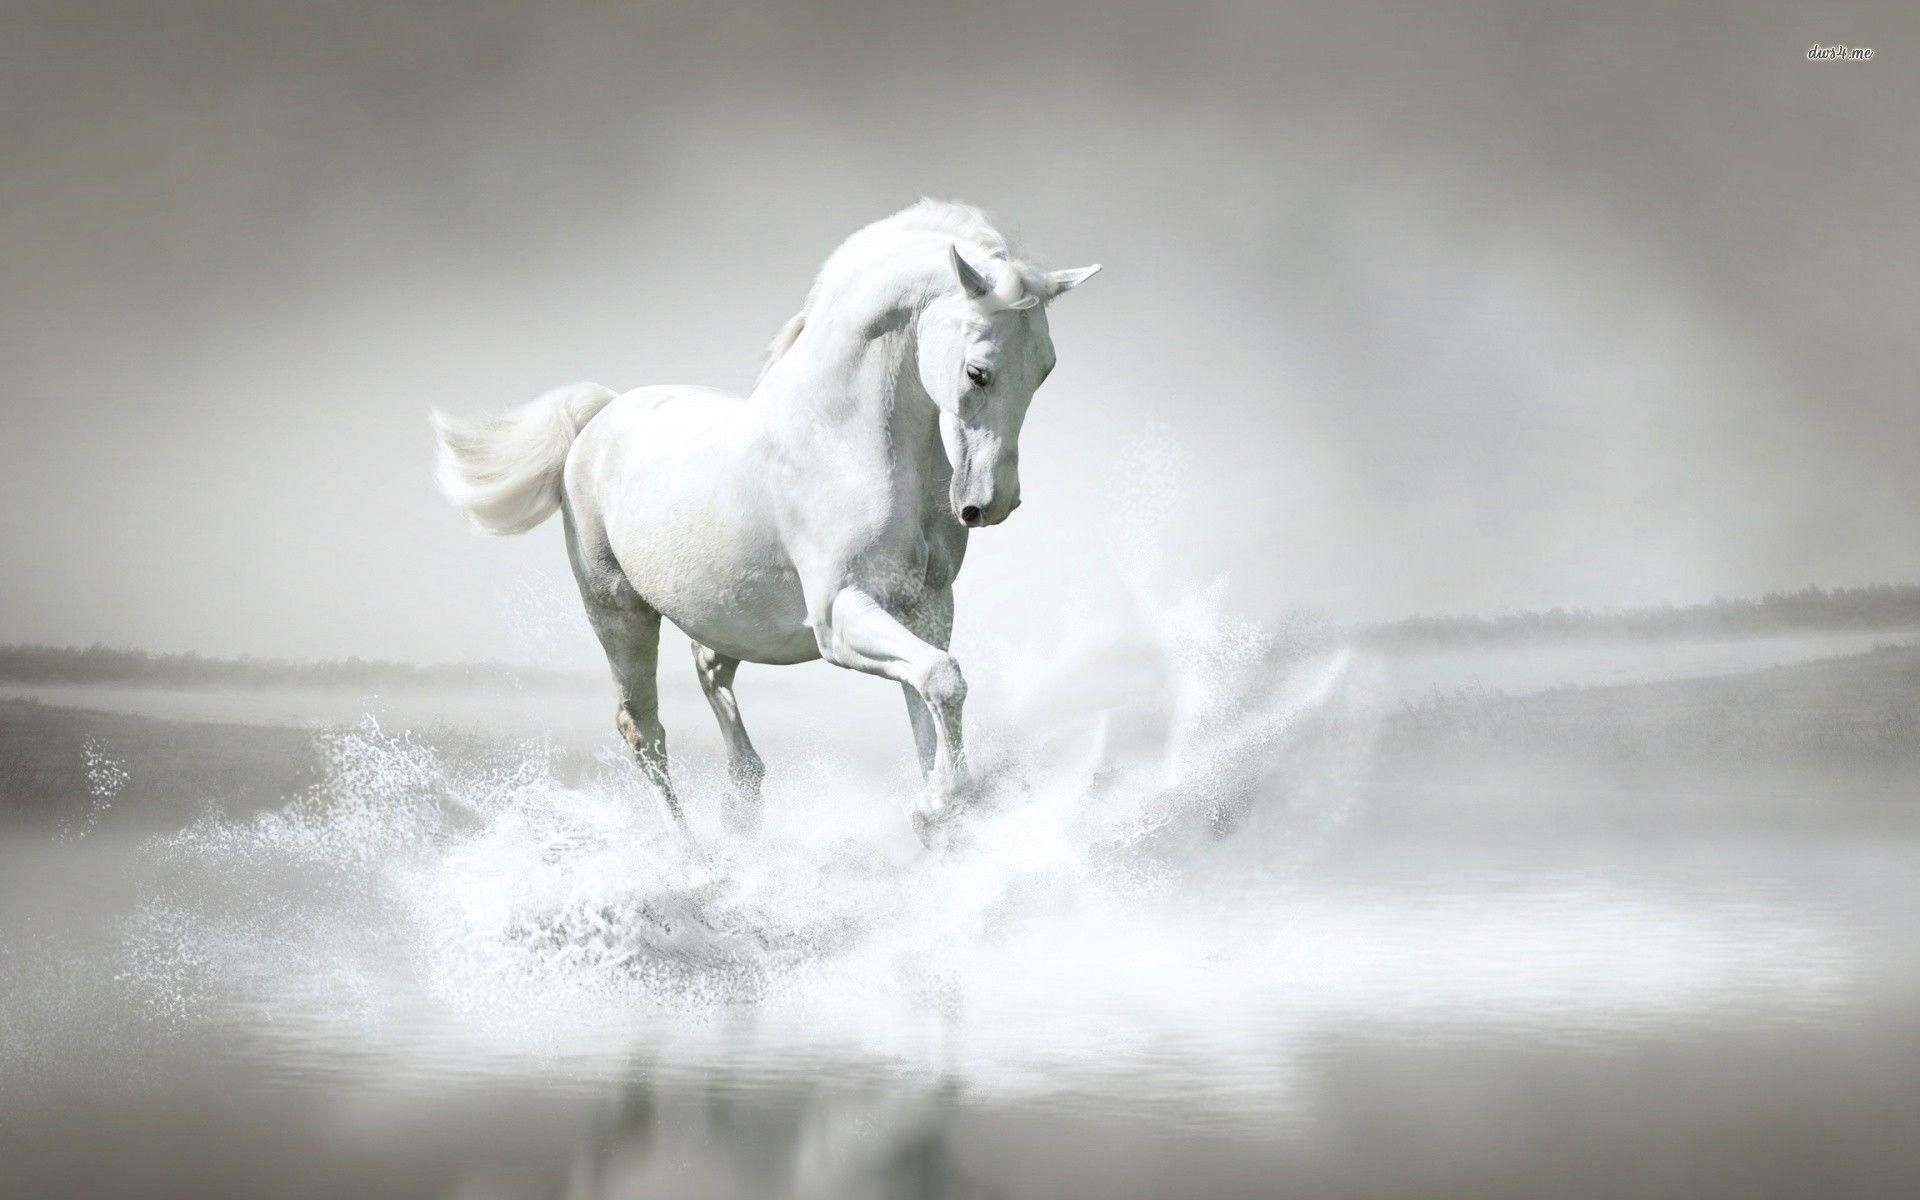 Horse Full Hd Wallpaper And Background 2560x1440 Id 432346 Kuda Putih Hewan Kuda